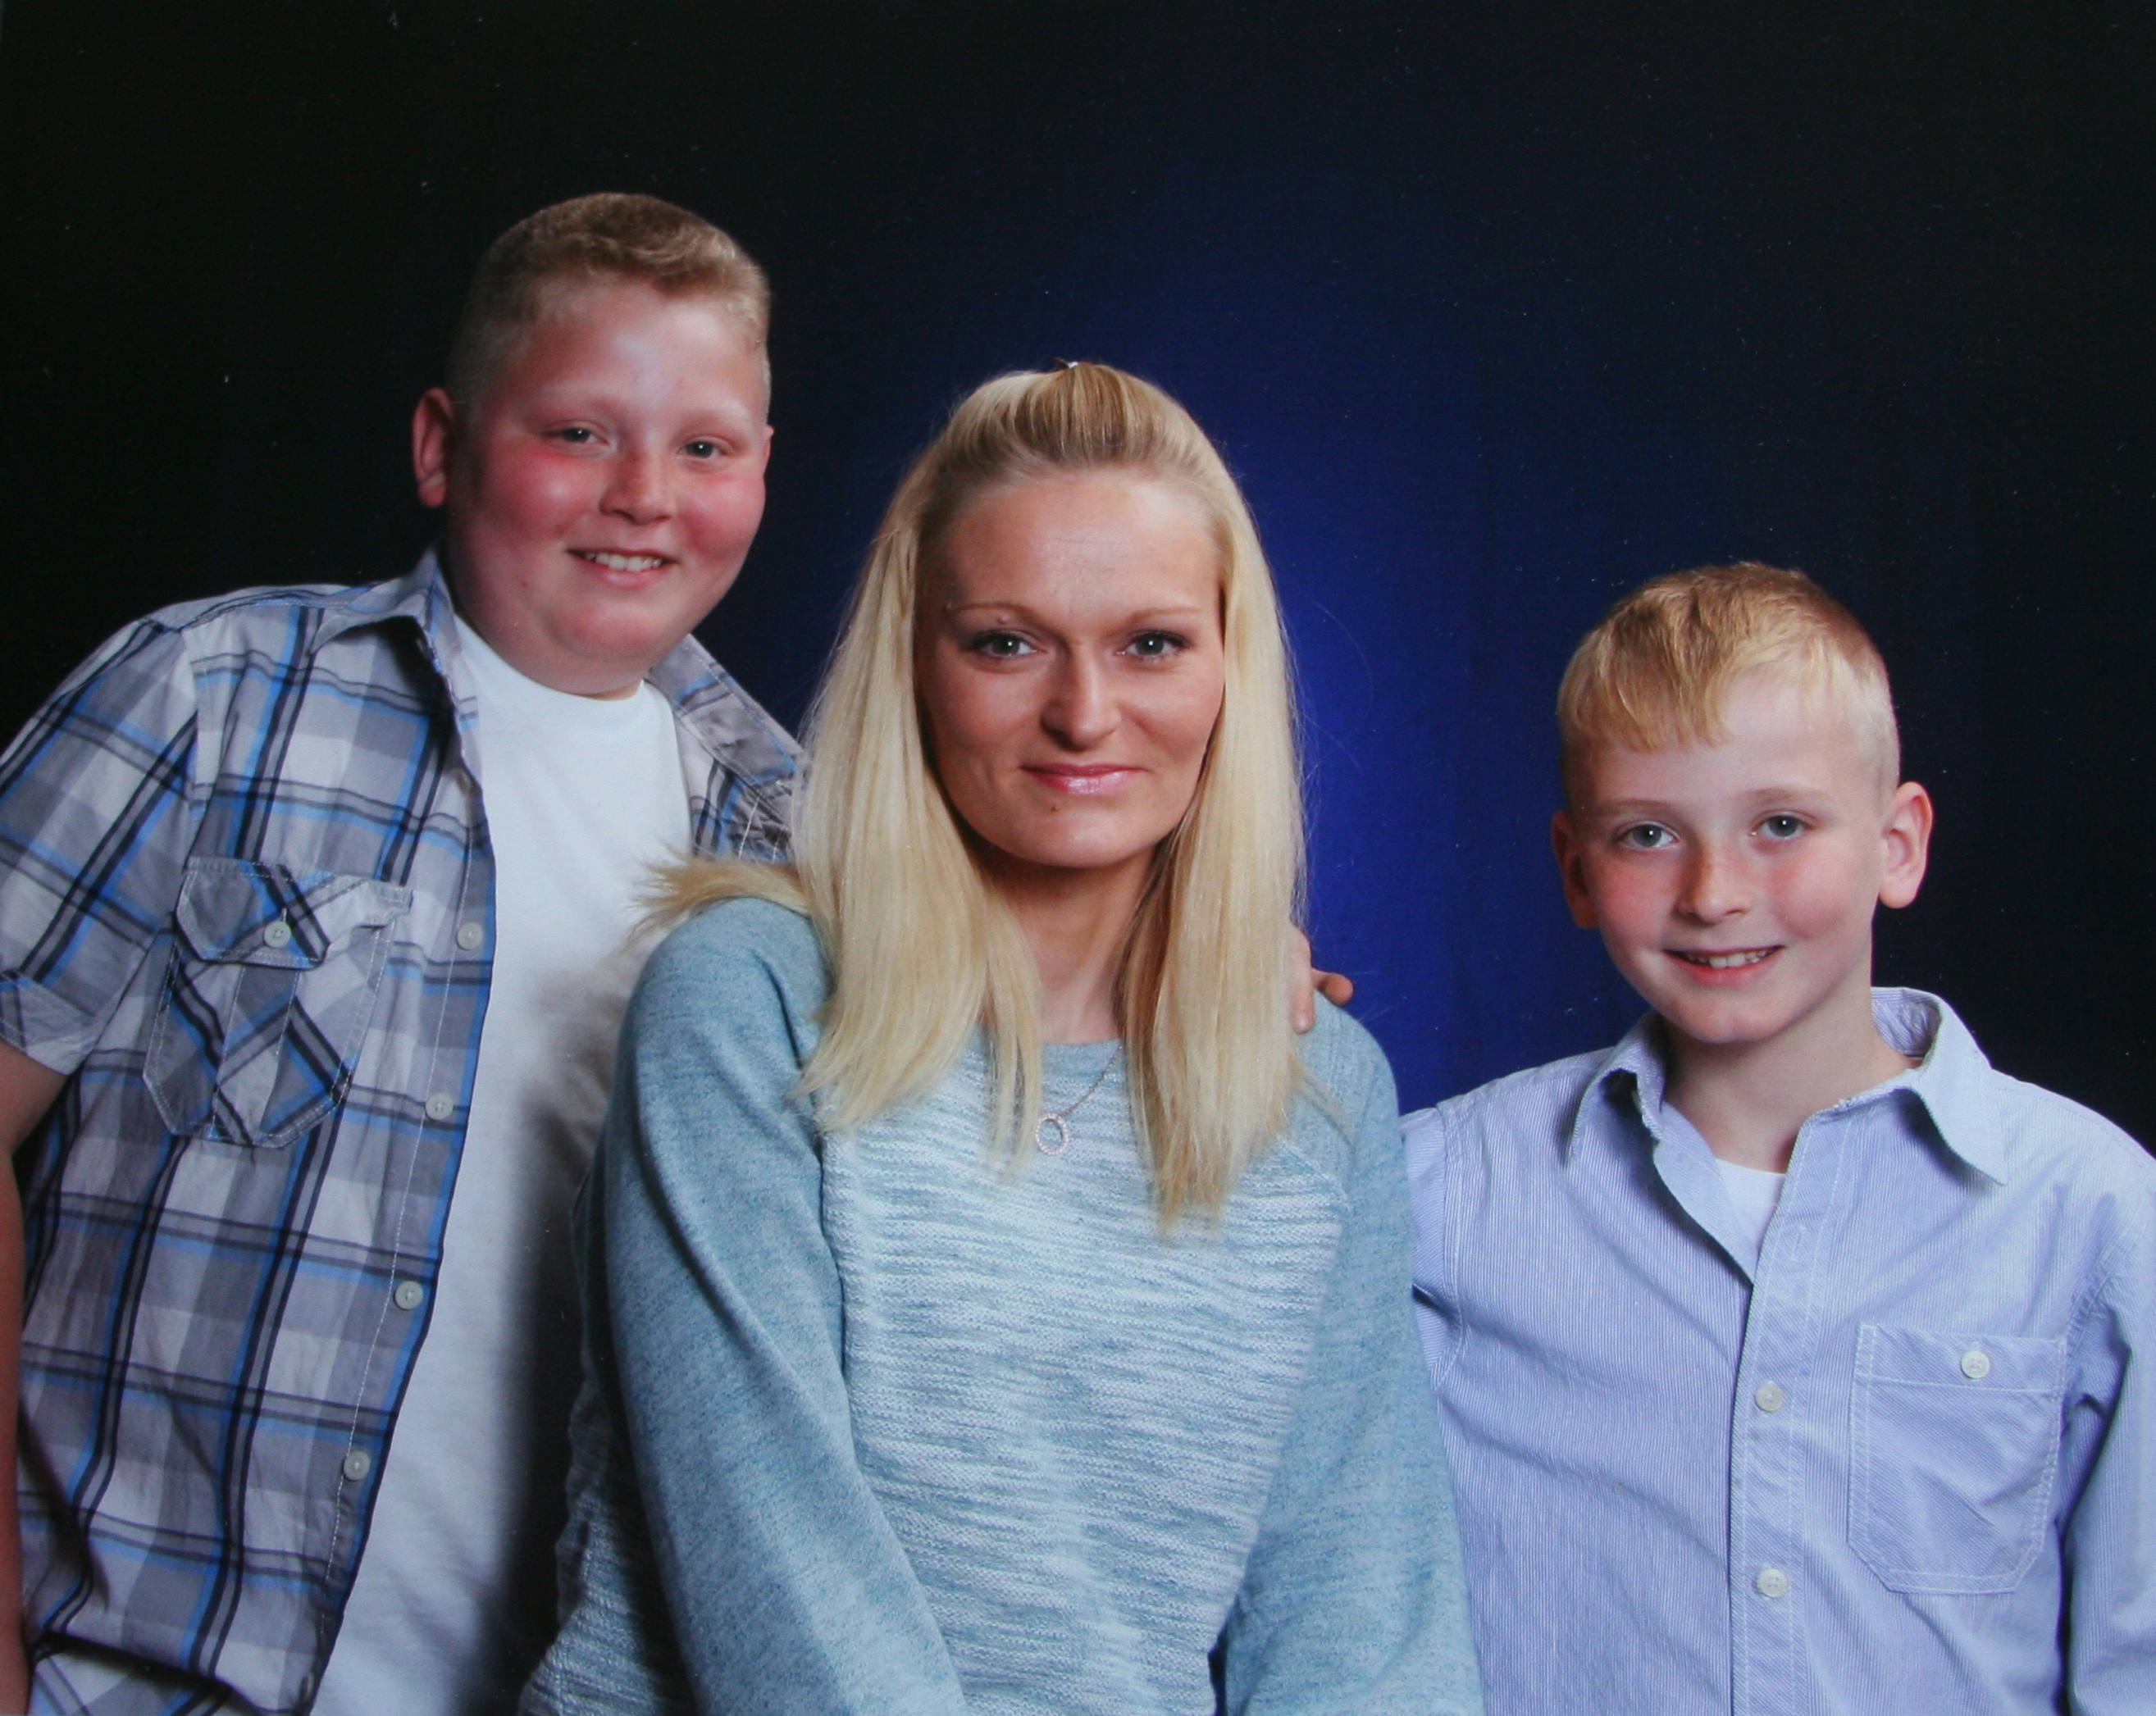 A photo taken as a school fundraiser during the school year with Hunter Jones, Natasha Fugate Jones, and Conner Jones.